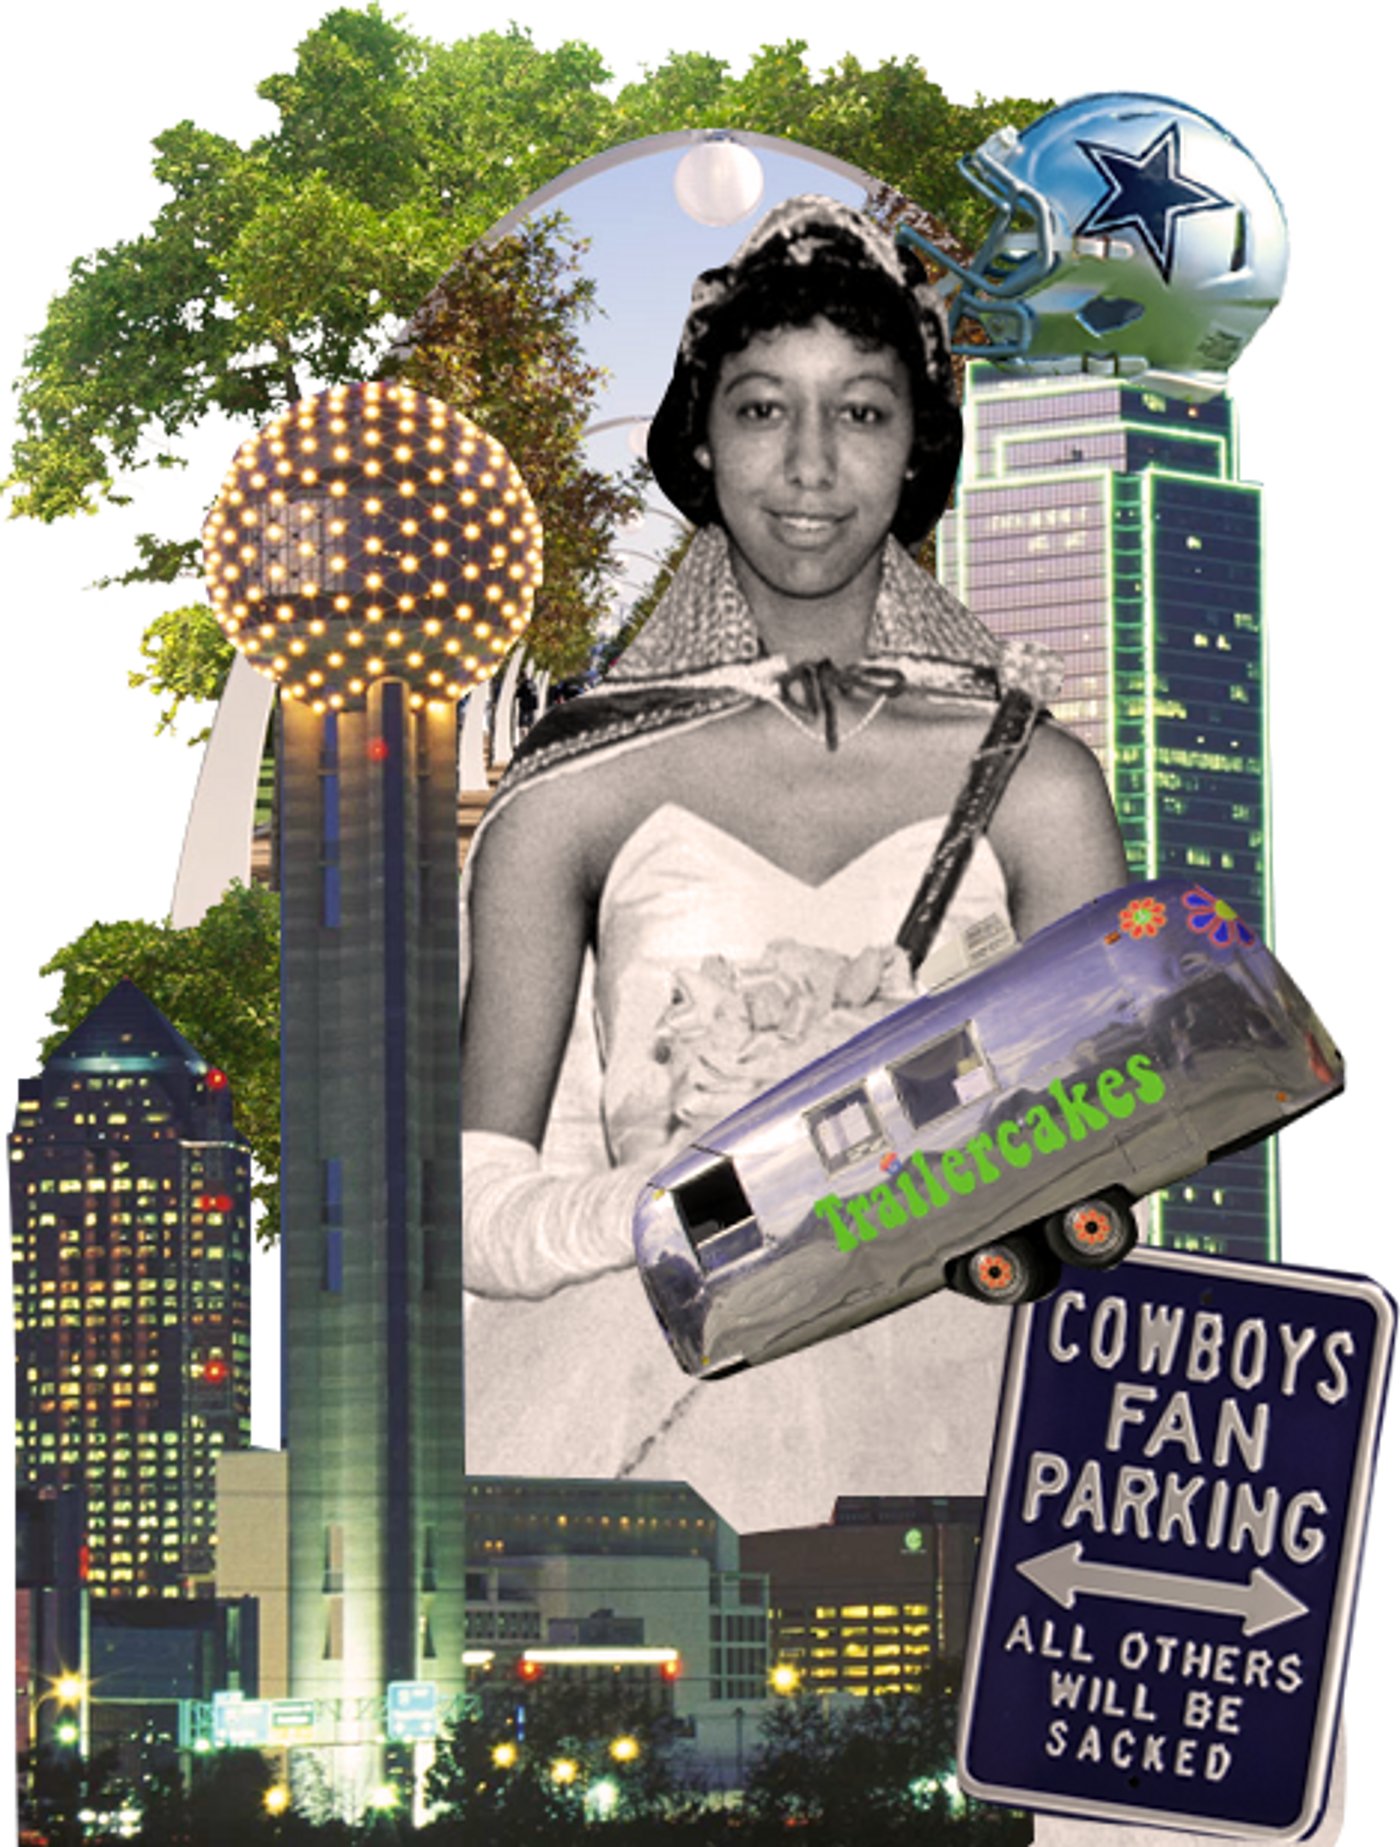 Collage of the city of Dallas with skyline and football helmet.